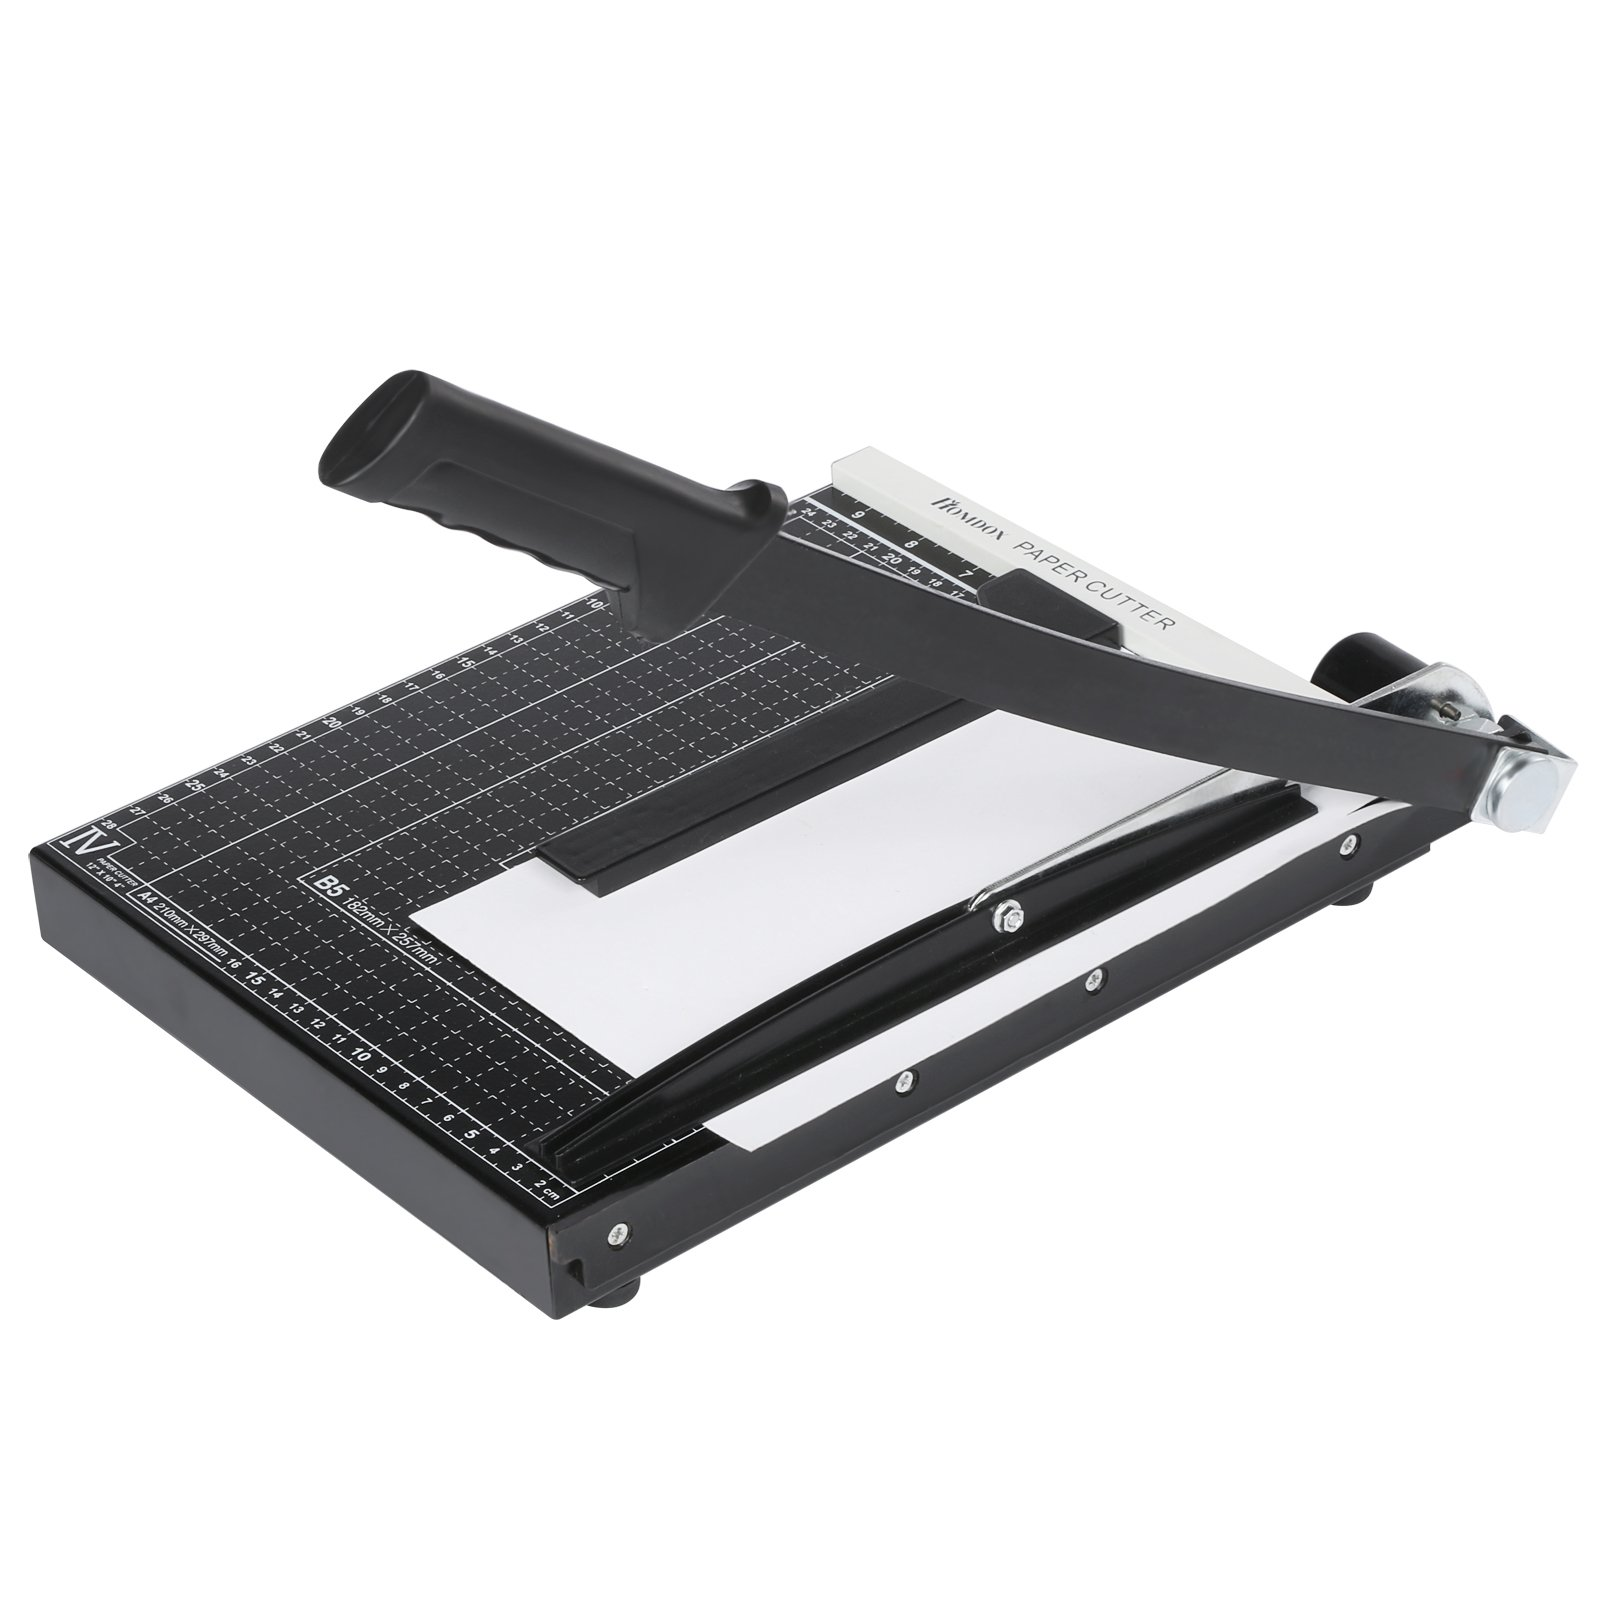 Kindsells Paper Trimmer, A4 Paper Desk Tops Steel Heavy Duty Auto-paper Pressing Bar Paper Cutter Scrap Machine for Office Home(US STOCK) (300250CM, Black)